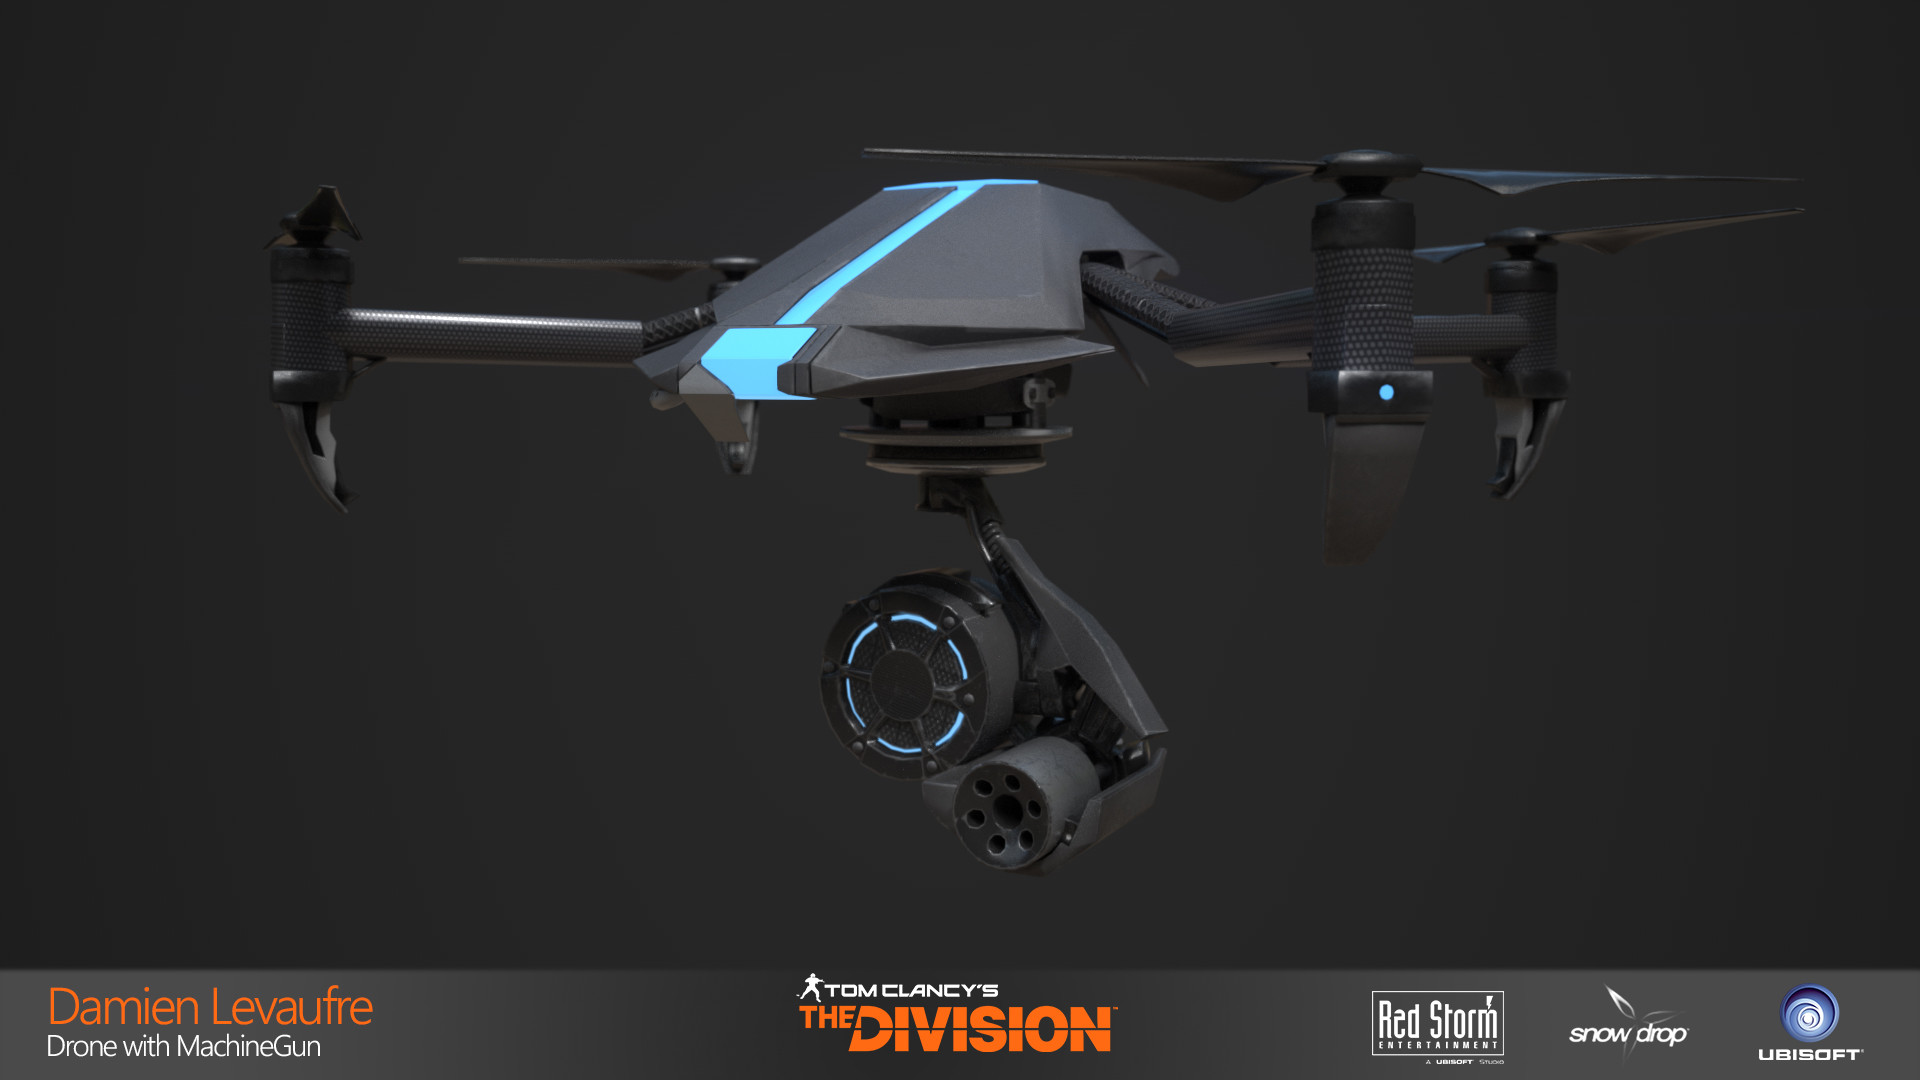 Damien levaufre drone 3 4 mg